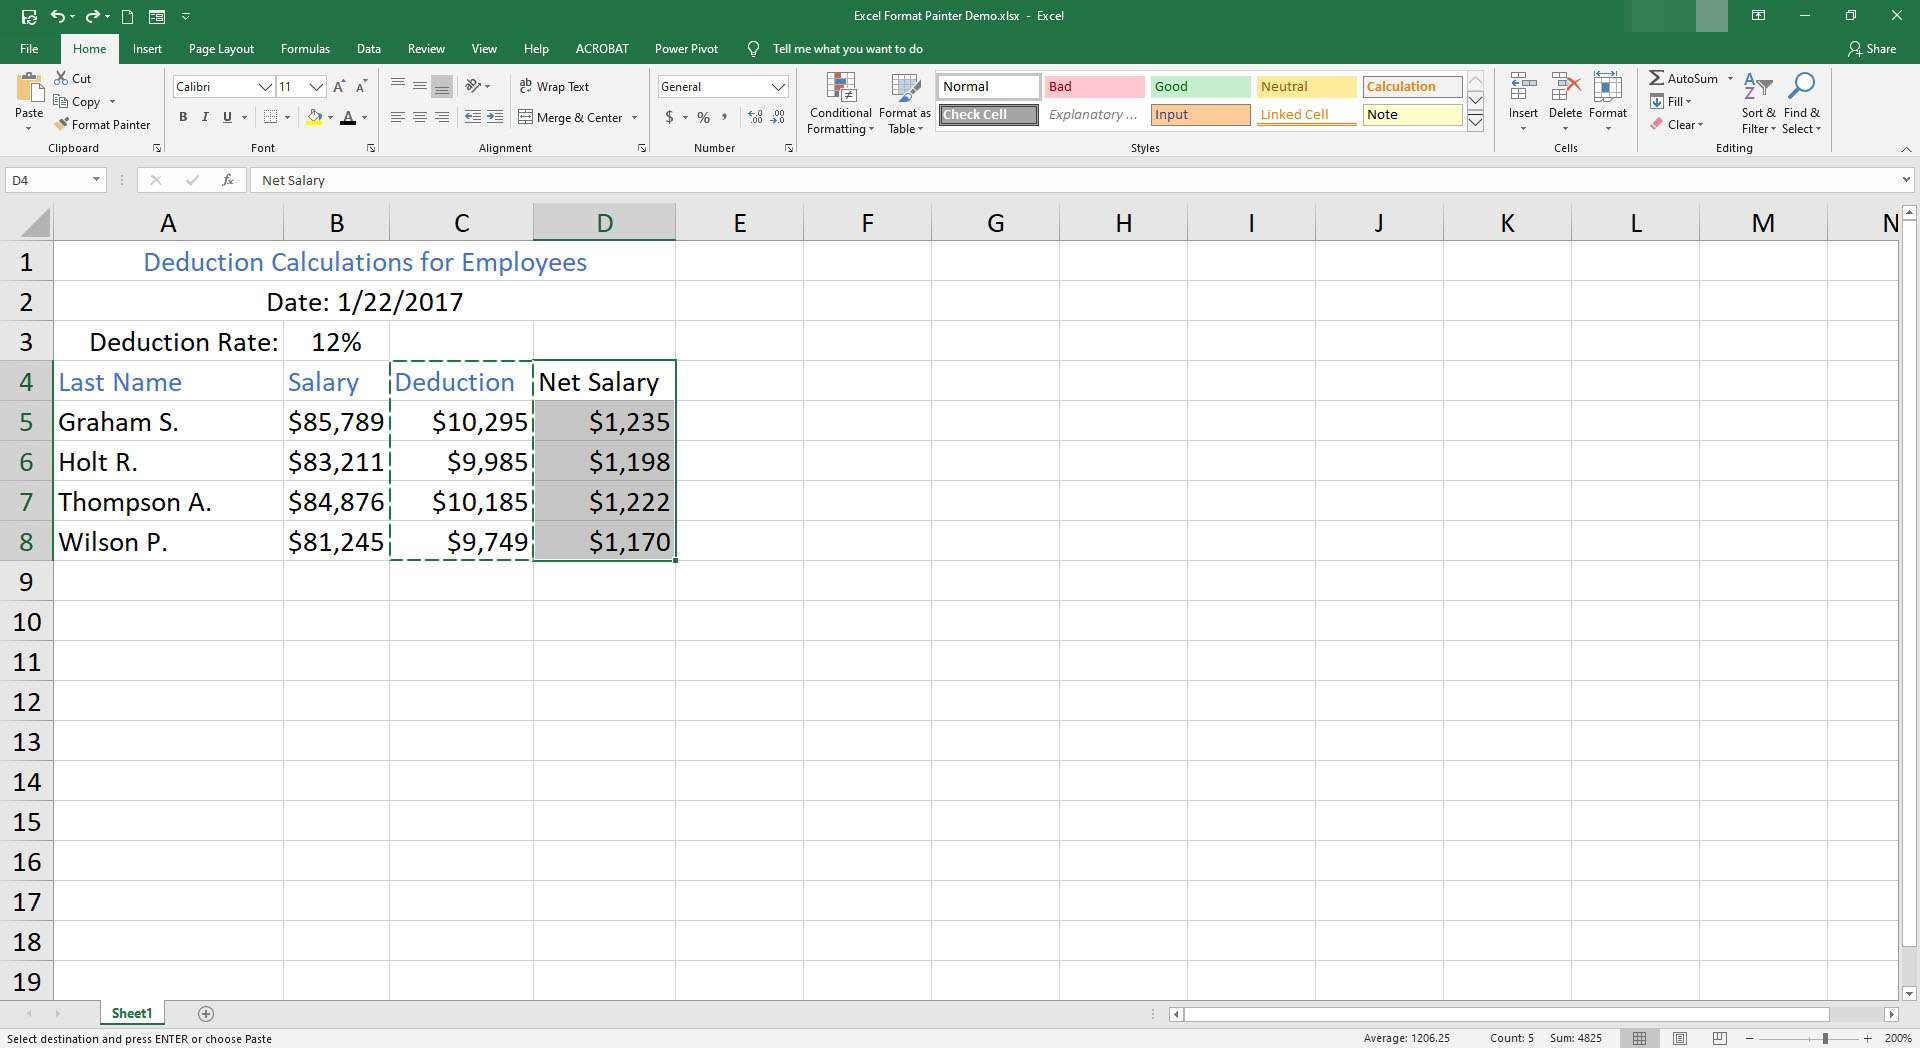 Cells D4 through D8 are selected in Excel.